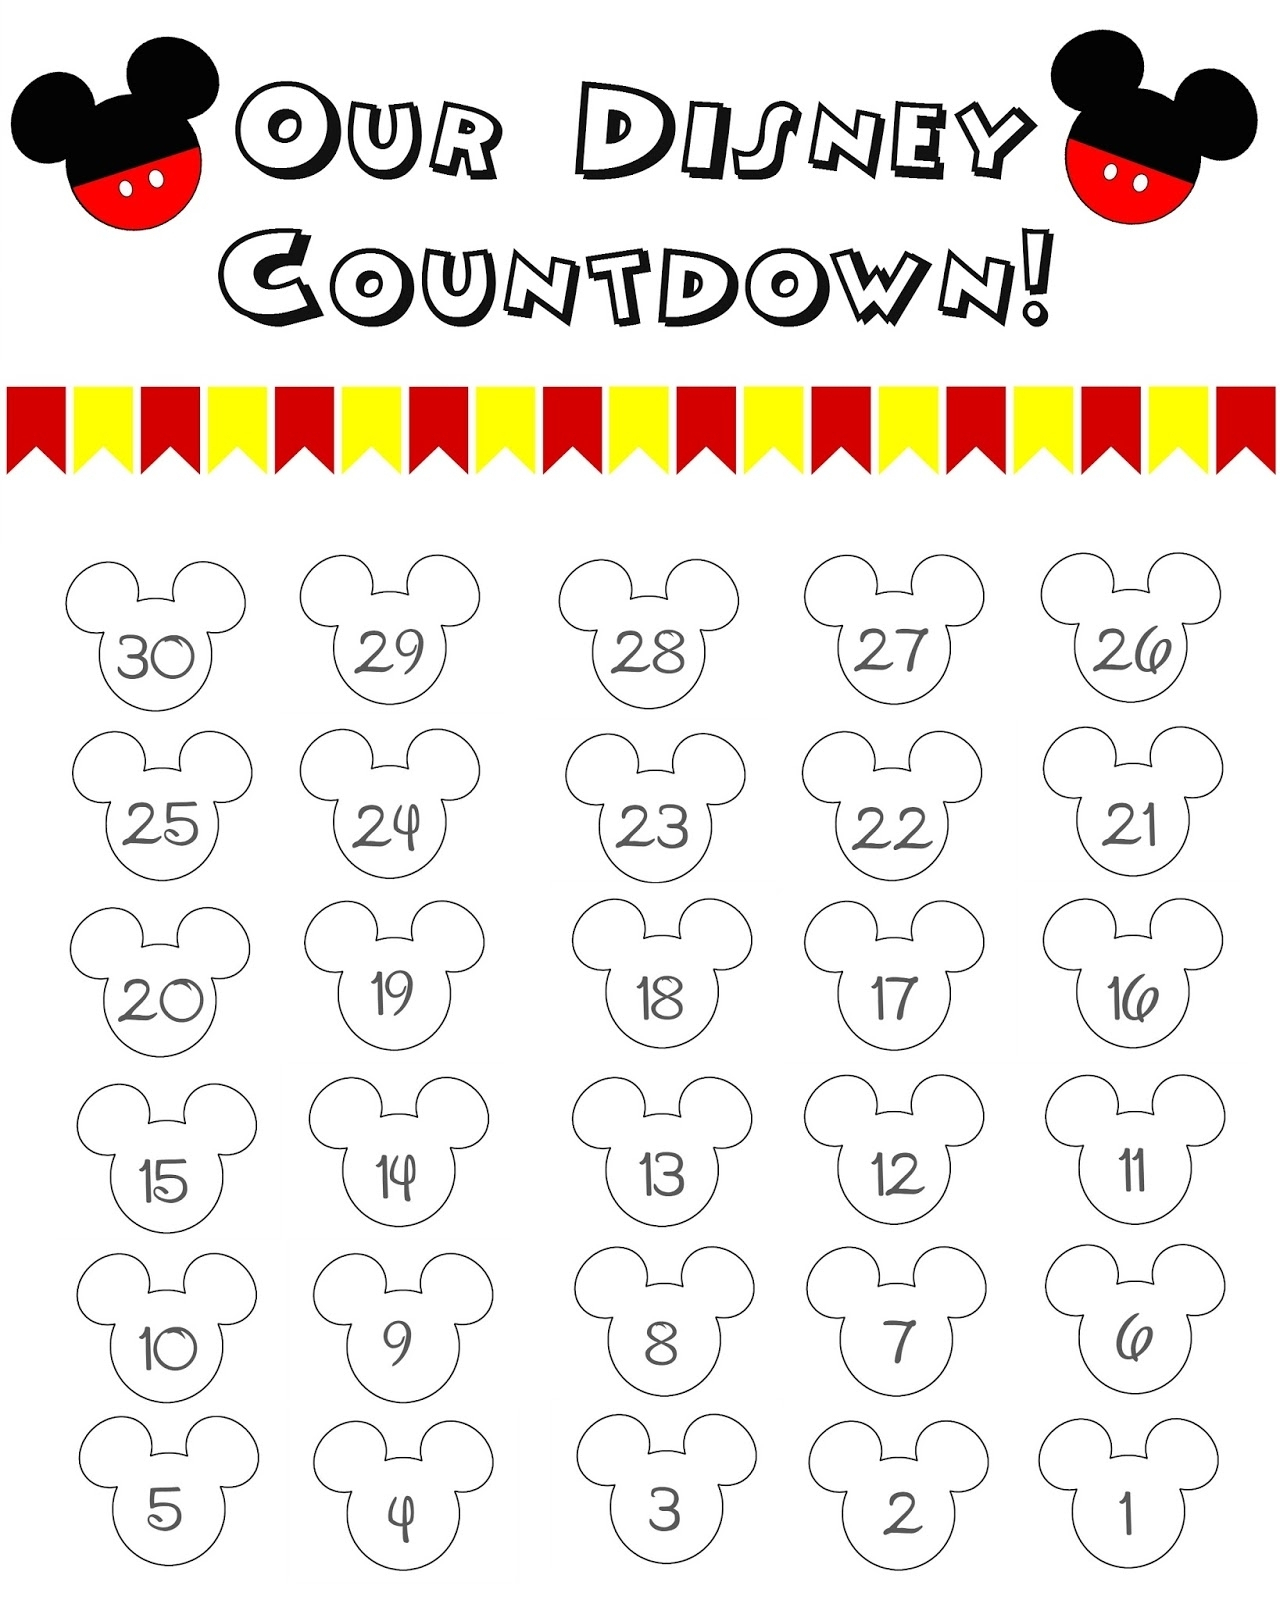 99 Days To Disney Printable Calendar - Calendar Inspiration